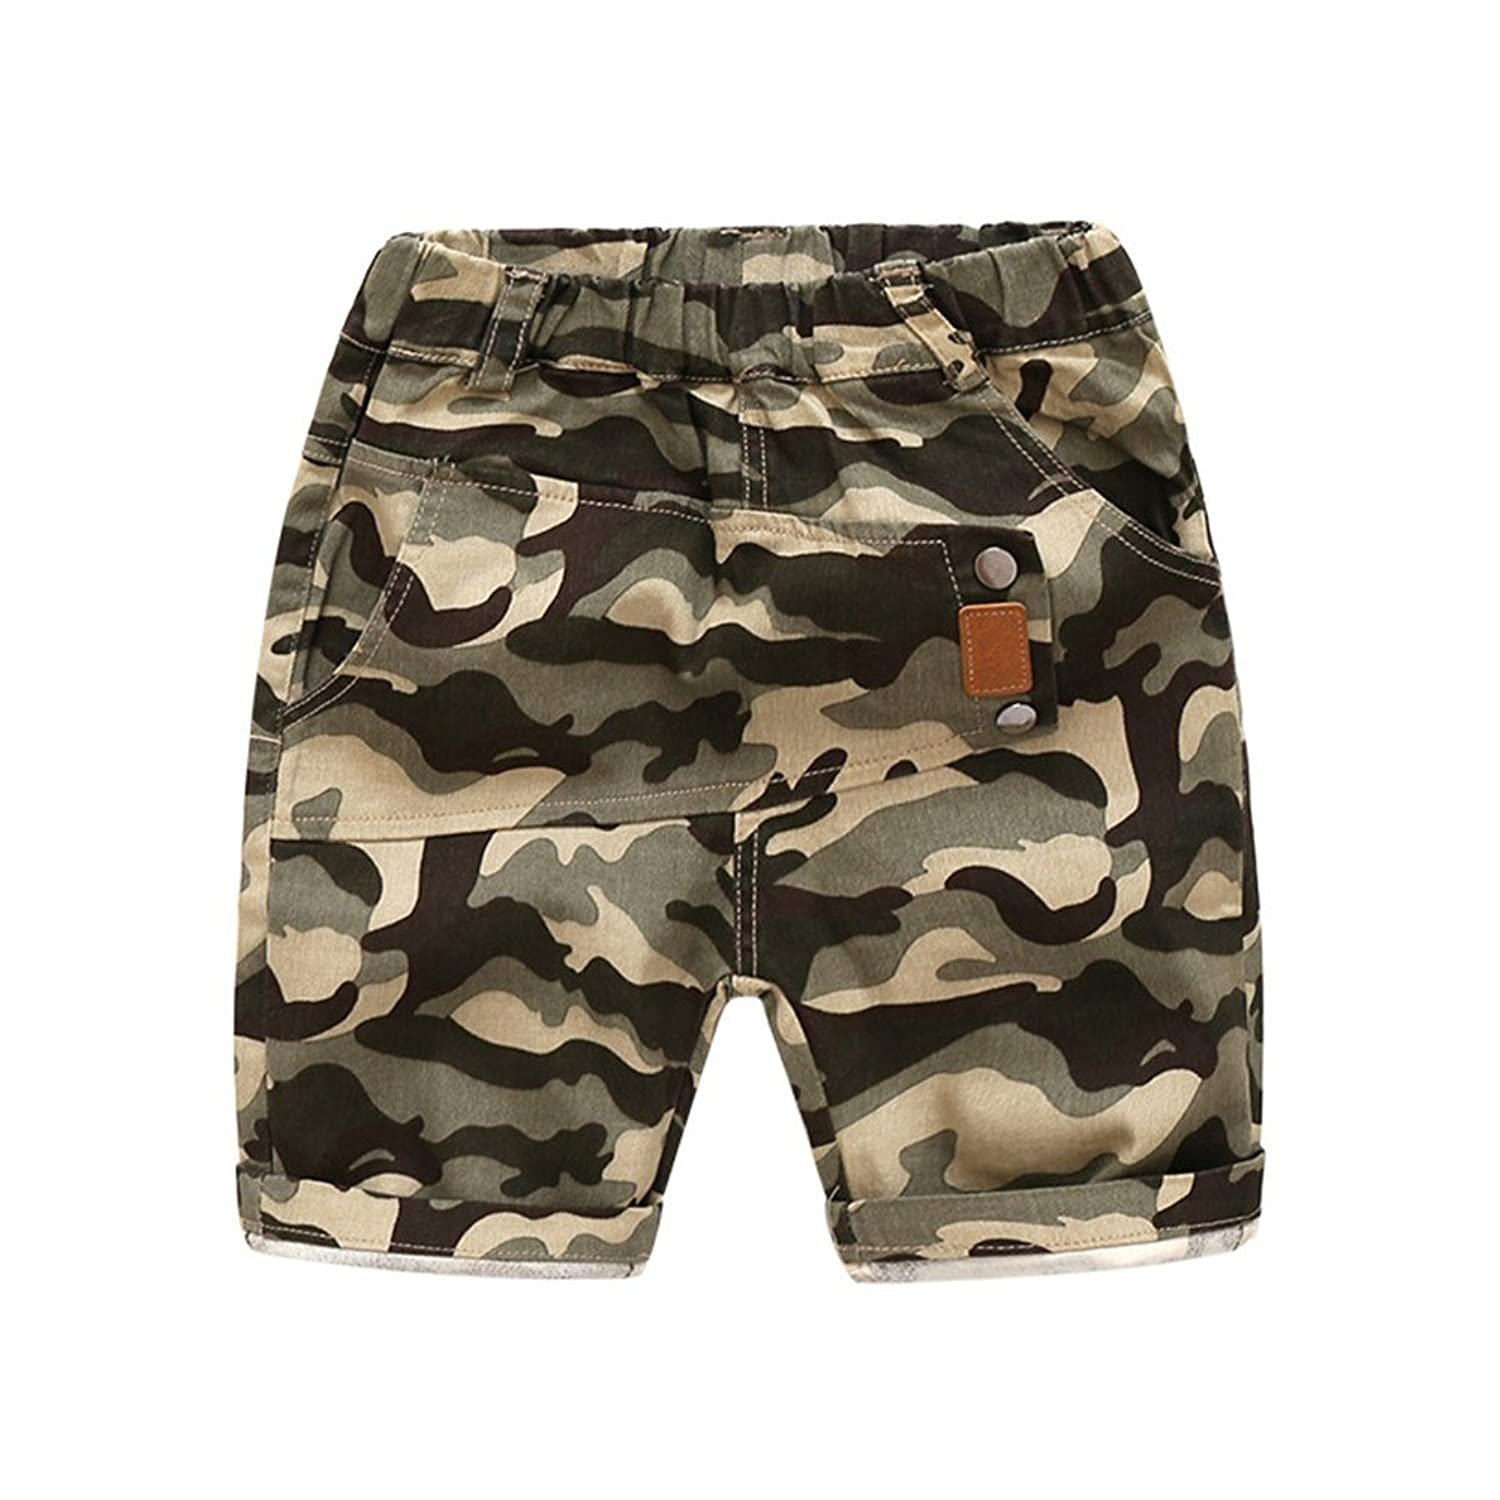 Mud Kingdom SHORTS ボーイズ